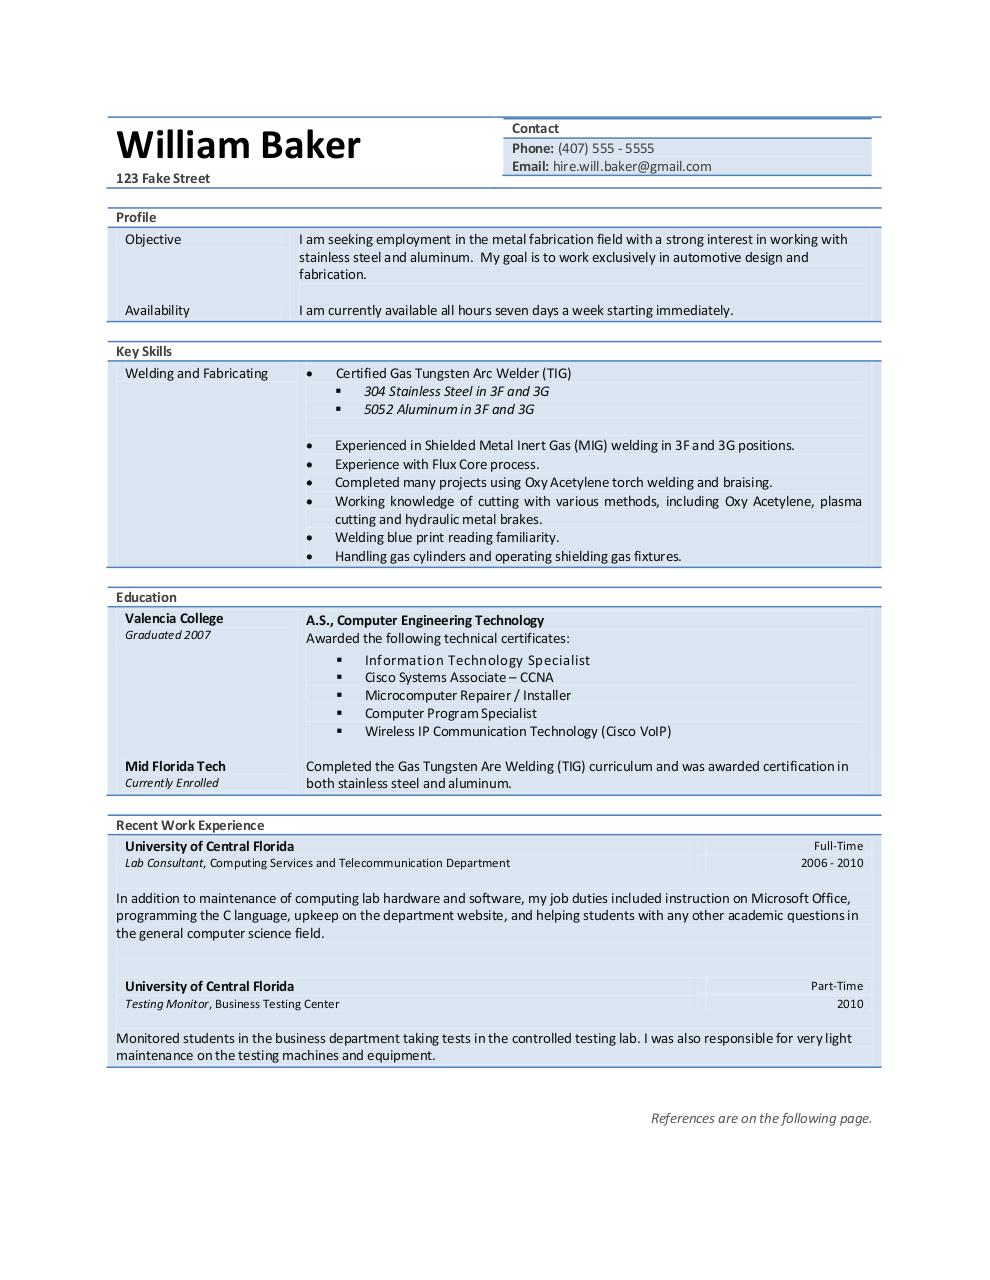 William Baker Welding Resume by Will - PDF Archive